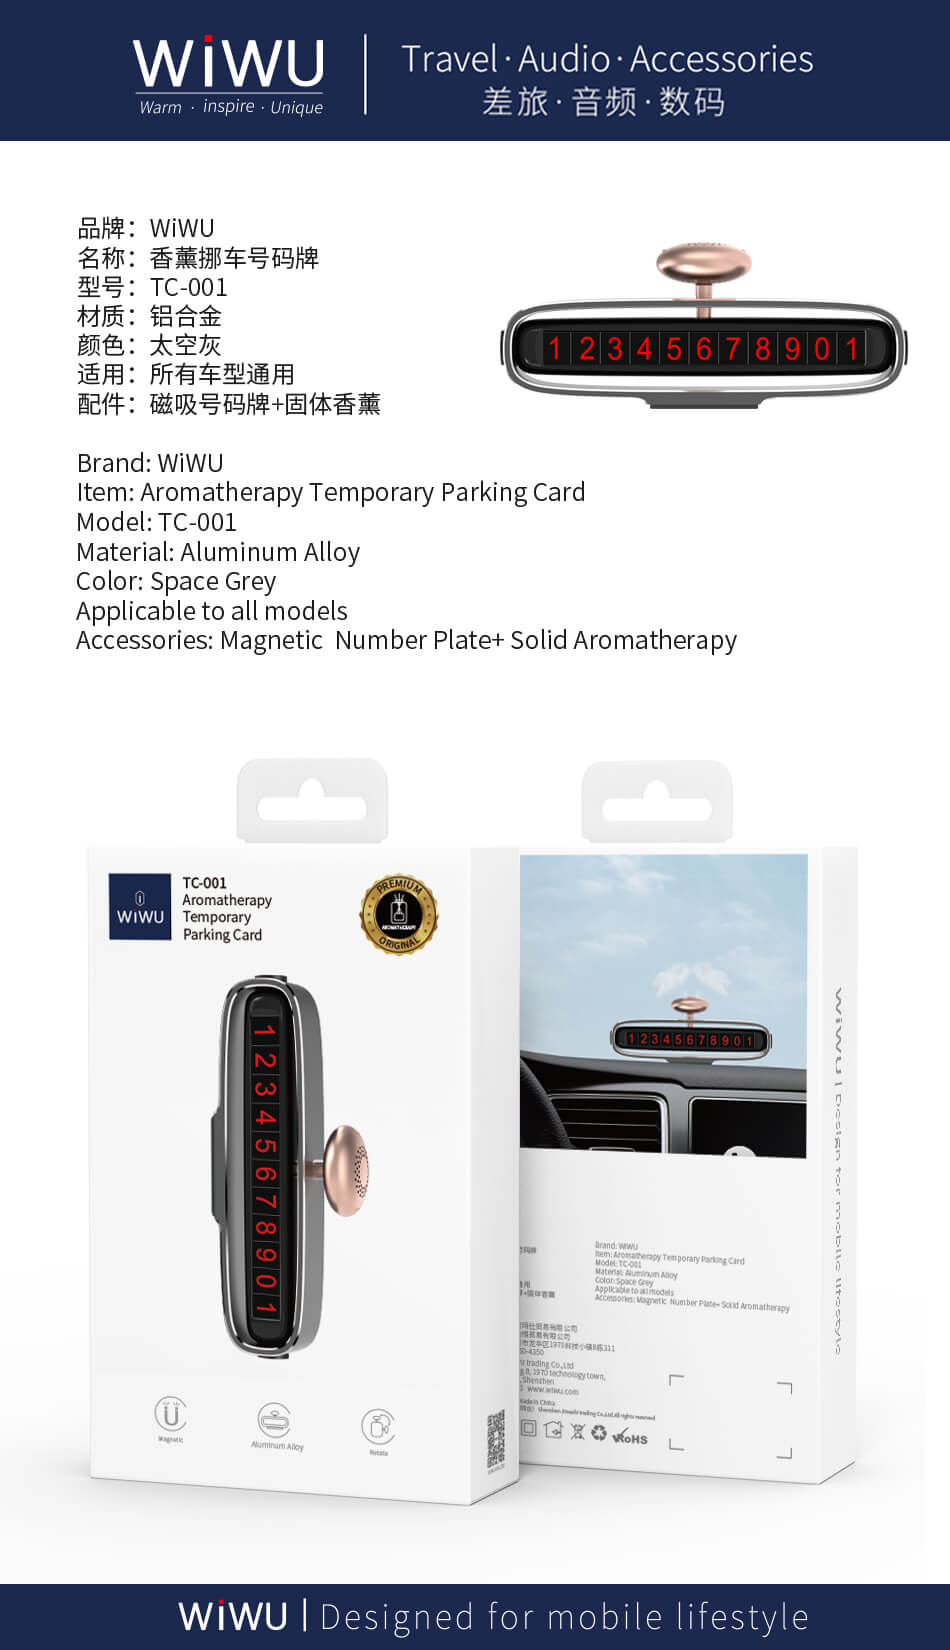 TC-006, Temporary parking card, TIK Tok Hot Phone Number Plate, Parking Card